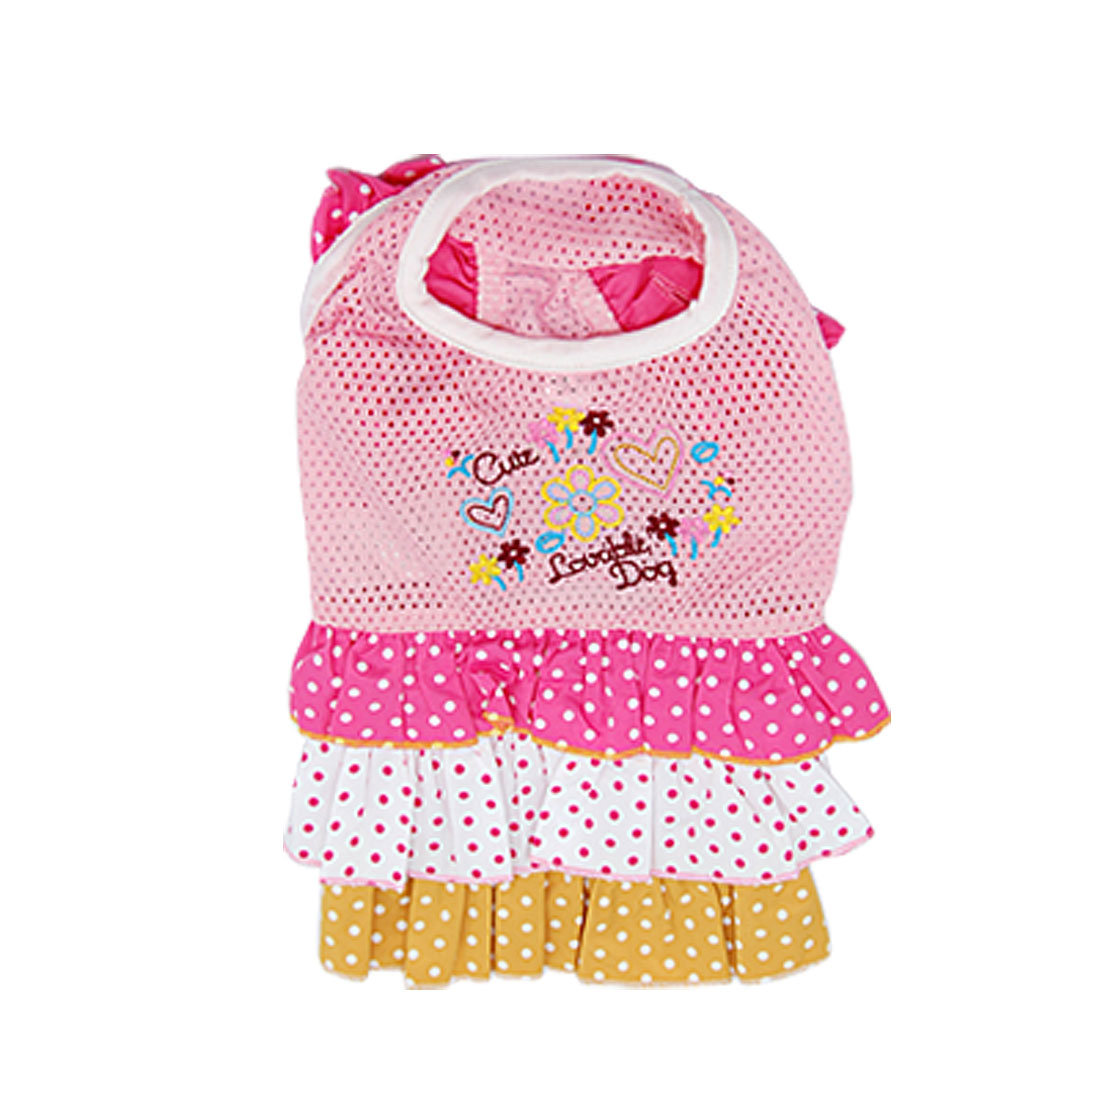 Lovely Chihuahua Pet Dog Clothes Dress Skirts Pink Shirts Multi colors Size 1